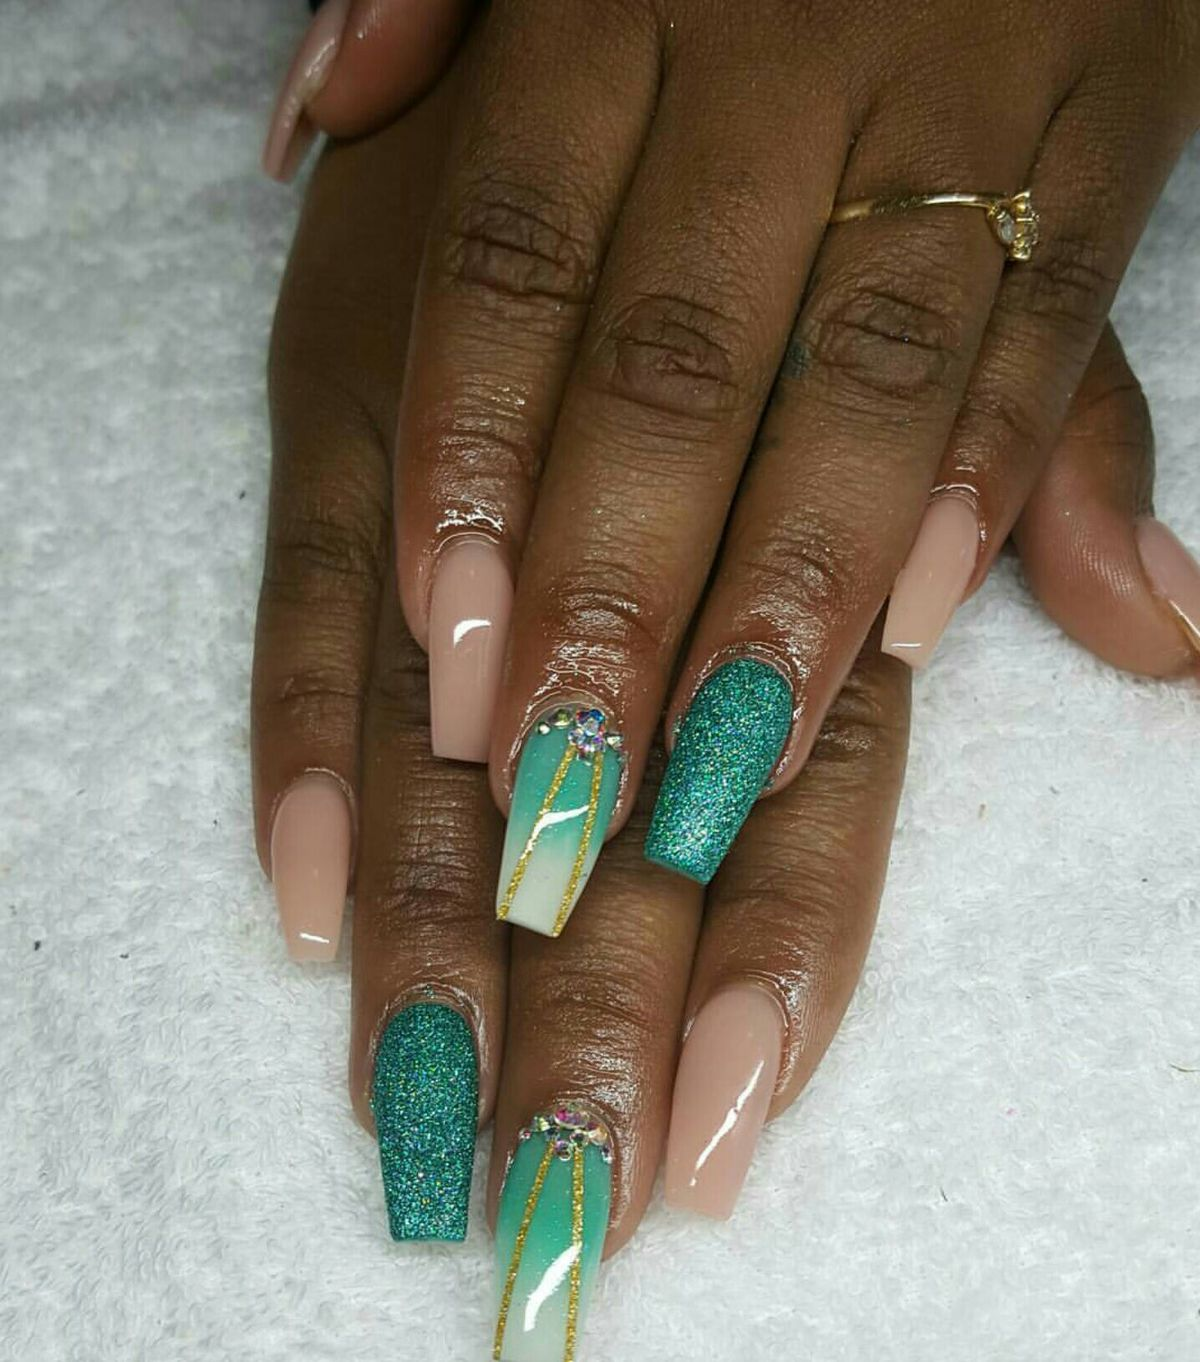 Pin by Skyla Higgins on Nailz!;) (With images) | Trendy nails